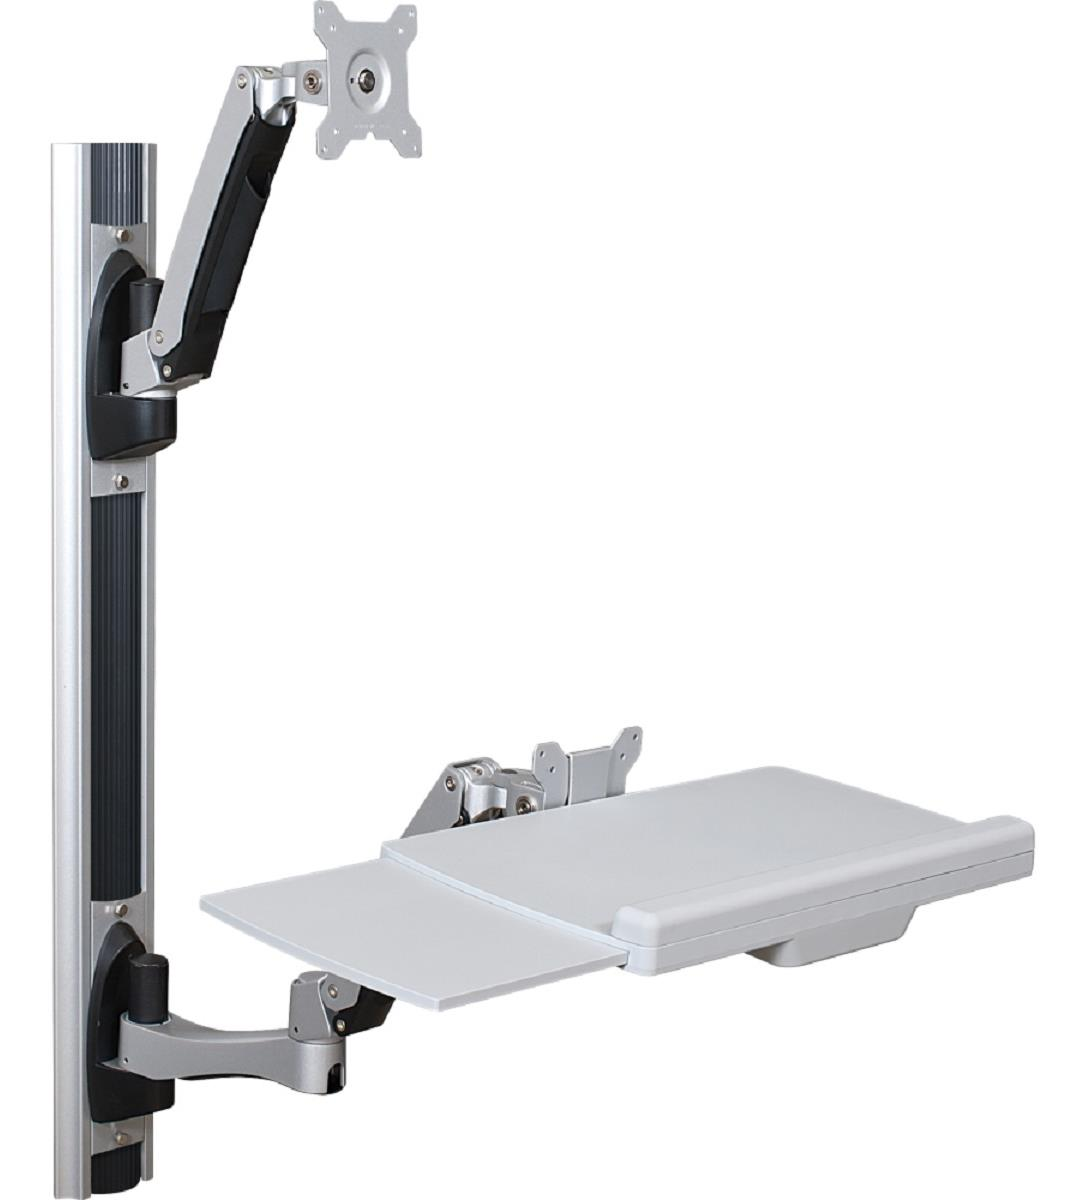 Wall Mounted Sit Stand Desk Single Monitor Bracket